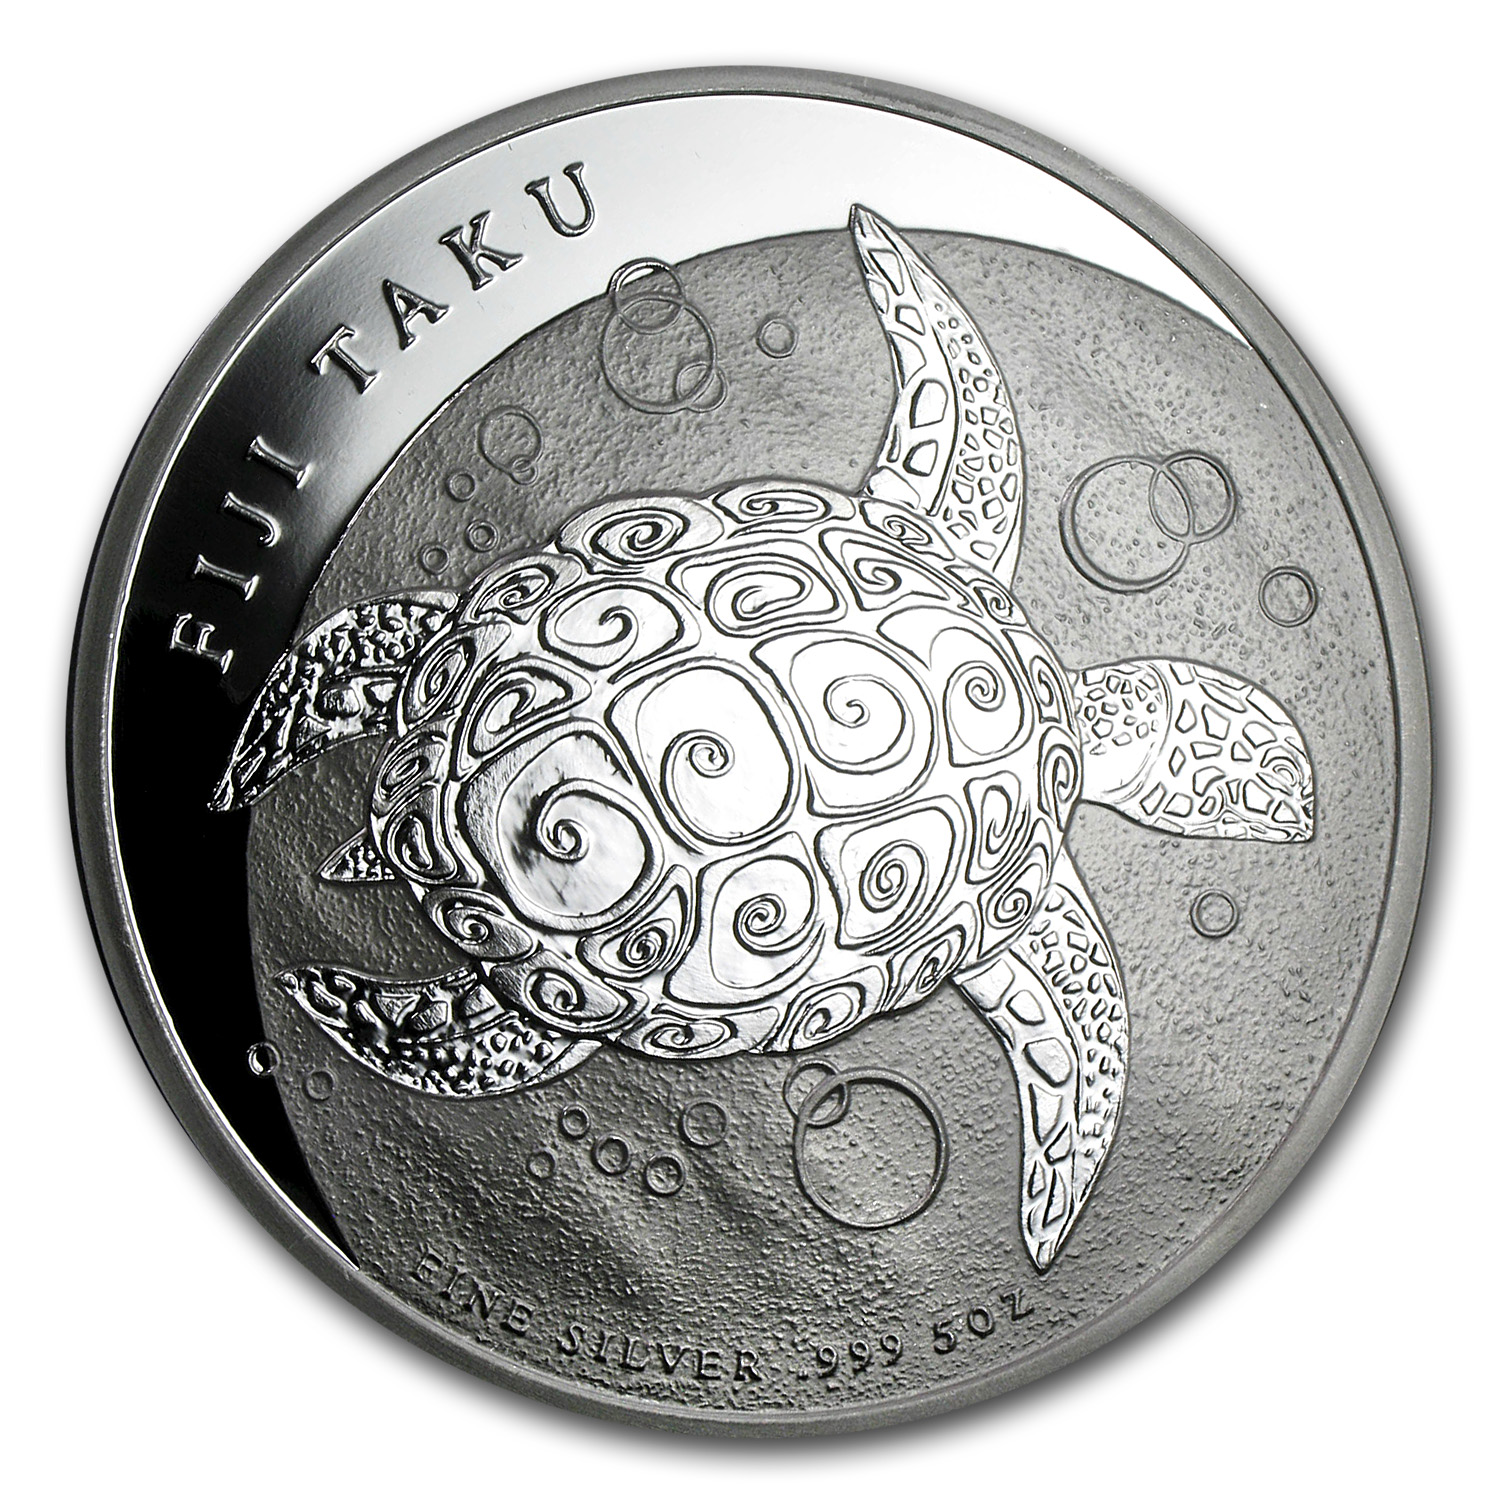 2012 5 oz Silver New Zealand Mint $10 Fiji Taku BU